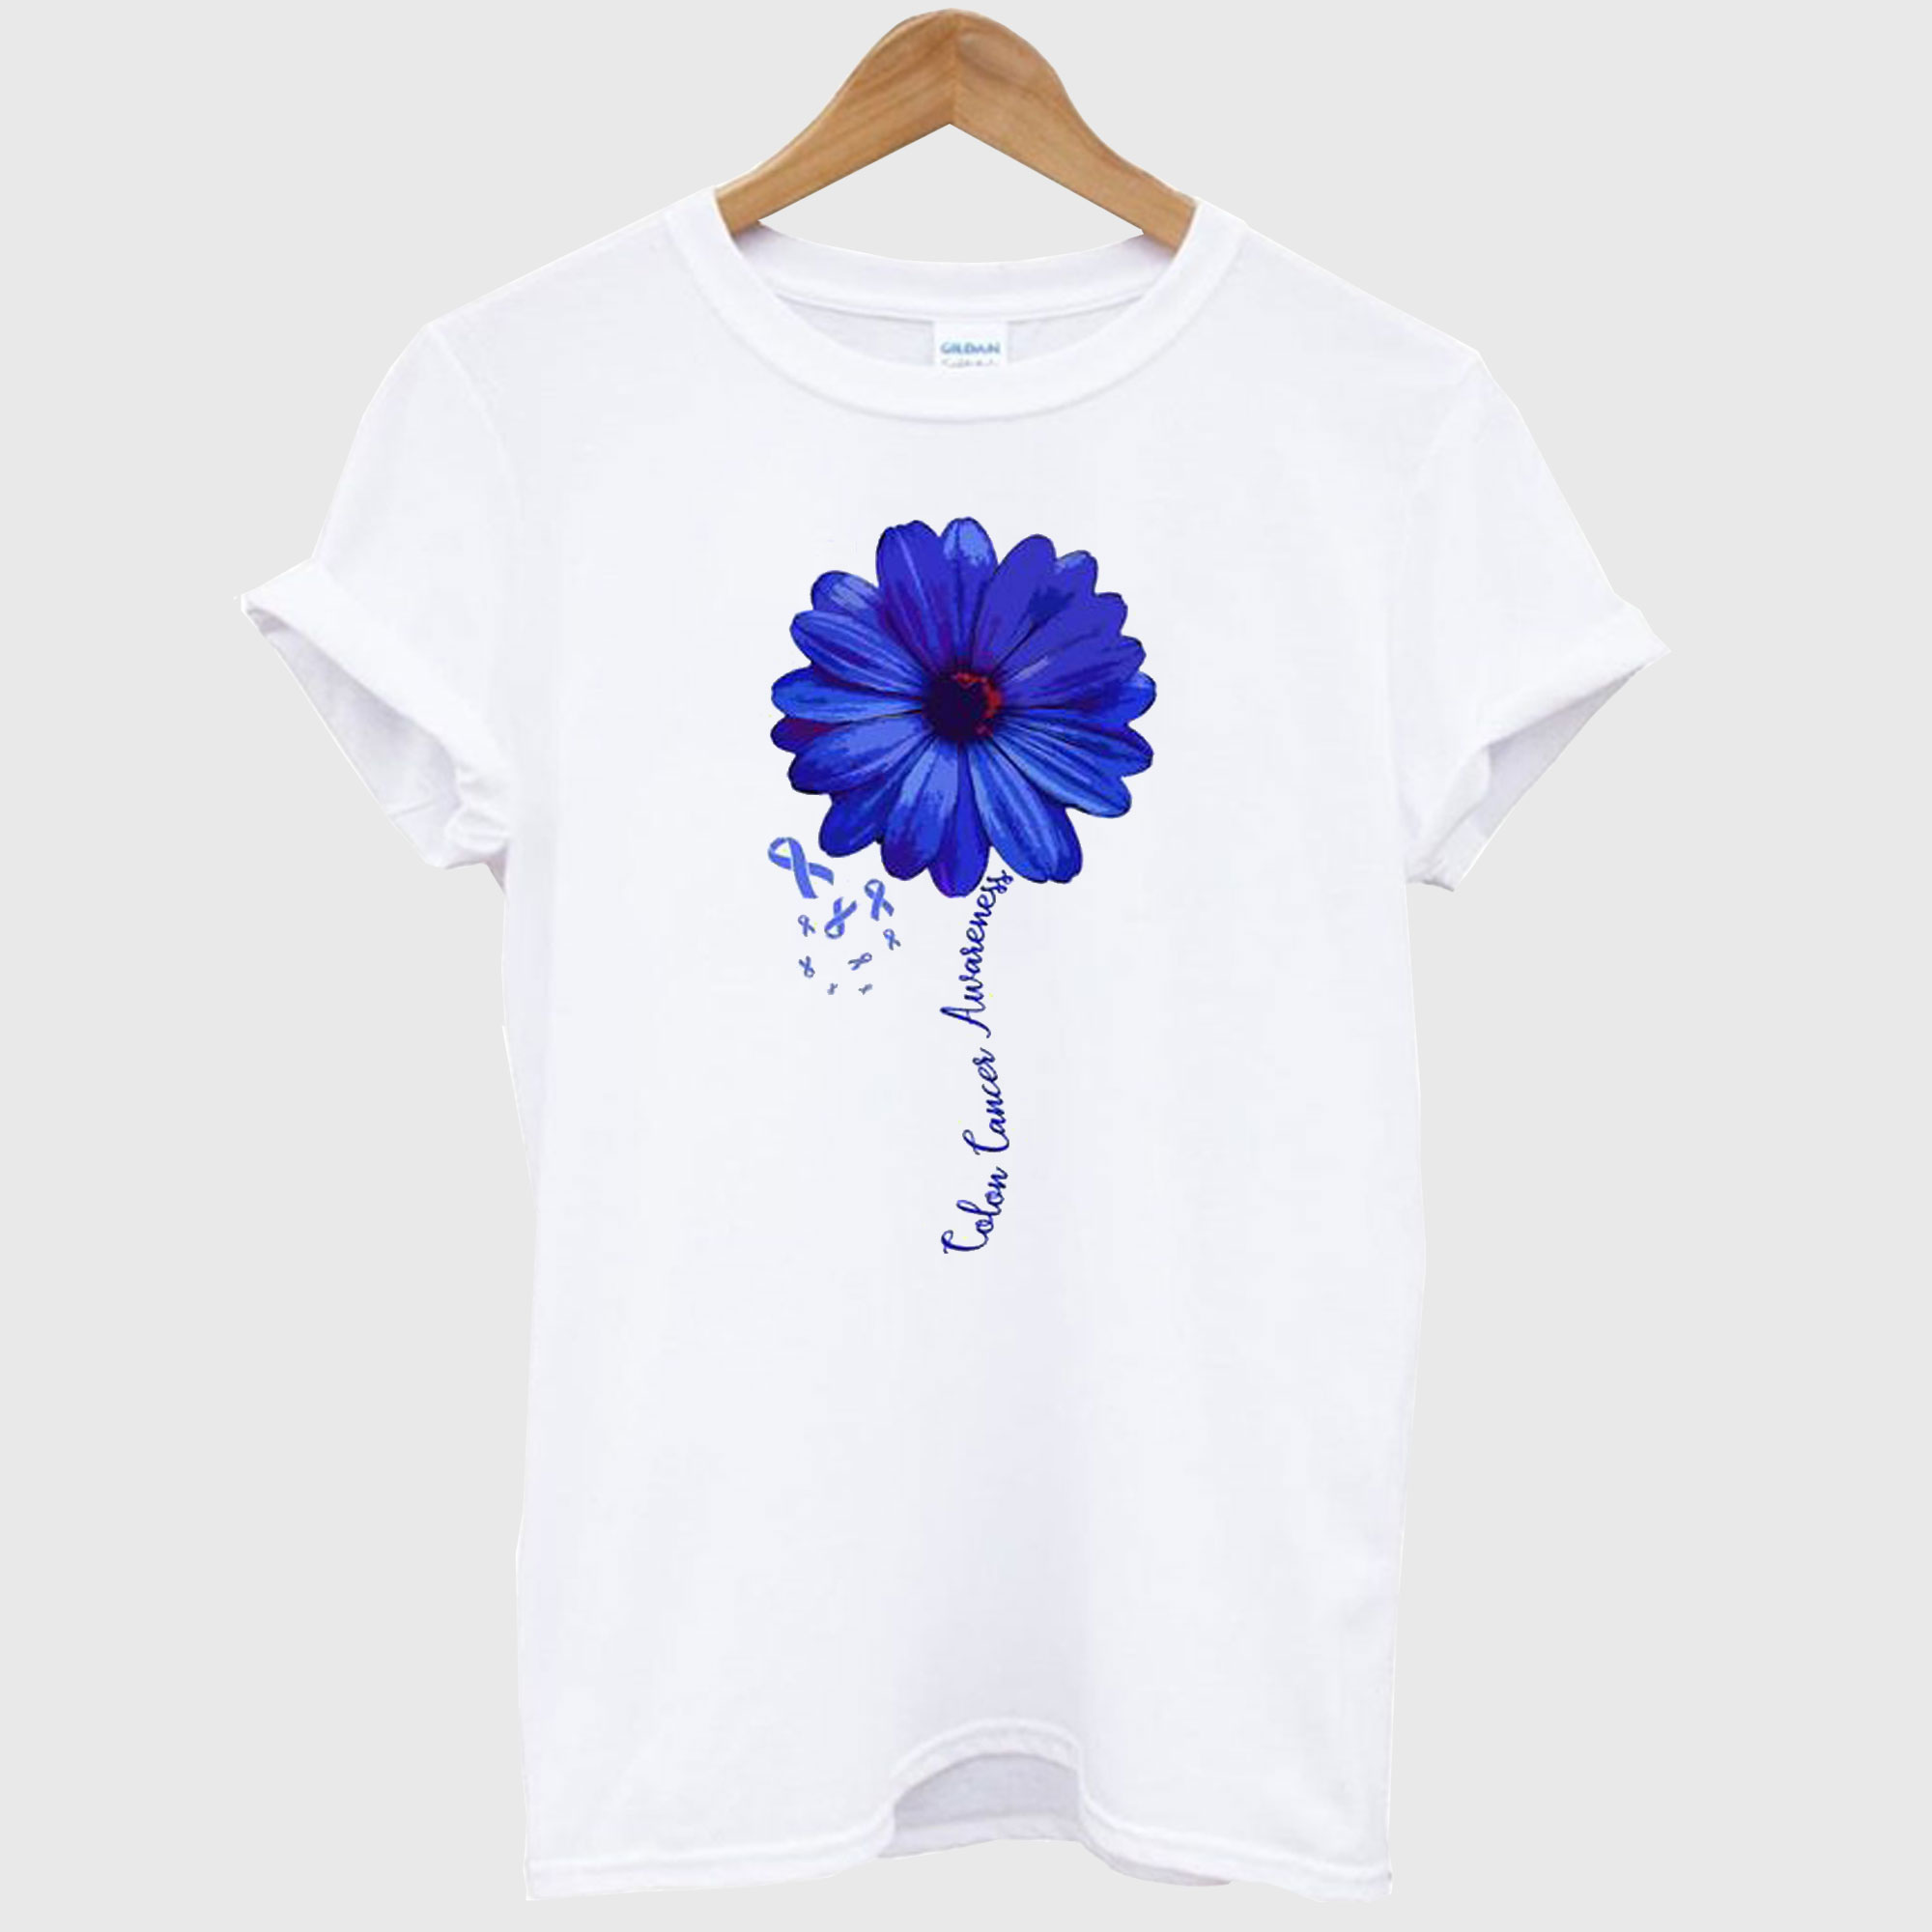 Amazing Good Quality And Trusted Colon Cancer Awareness T Shirt